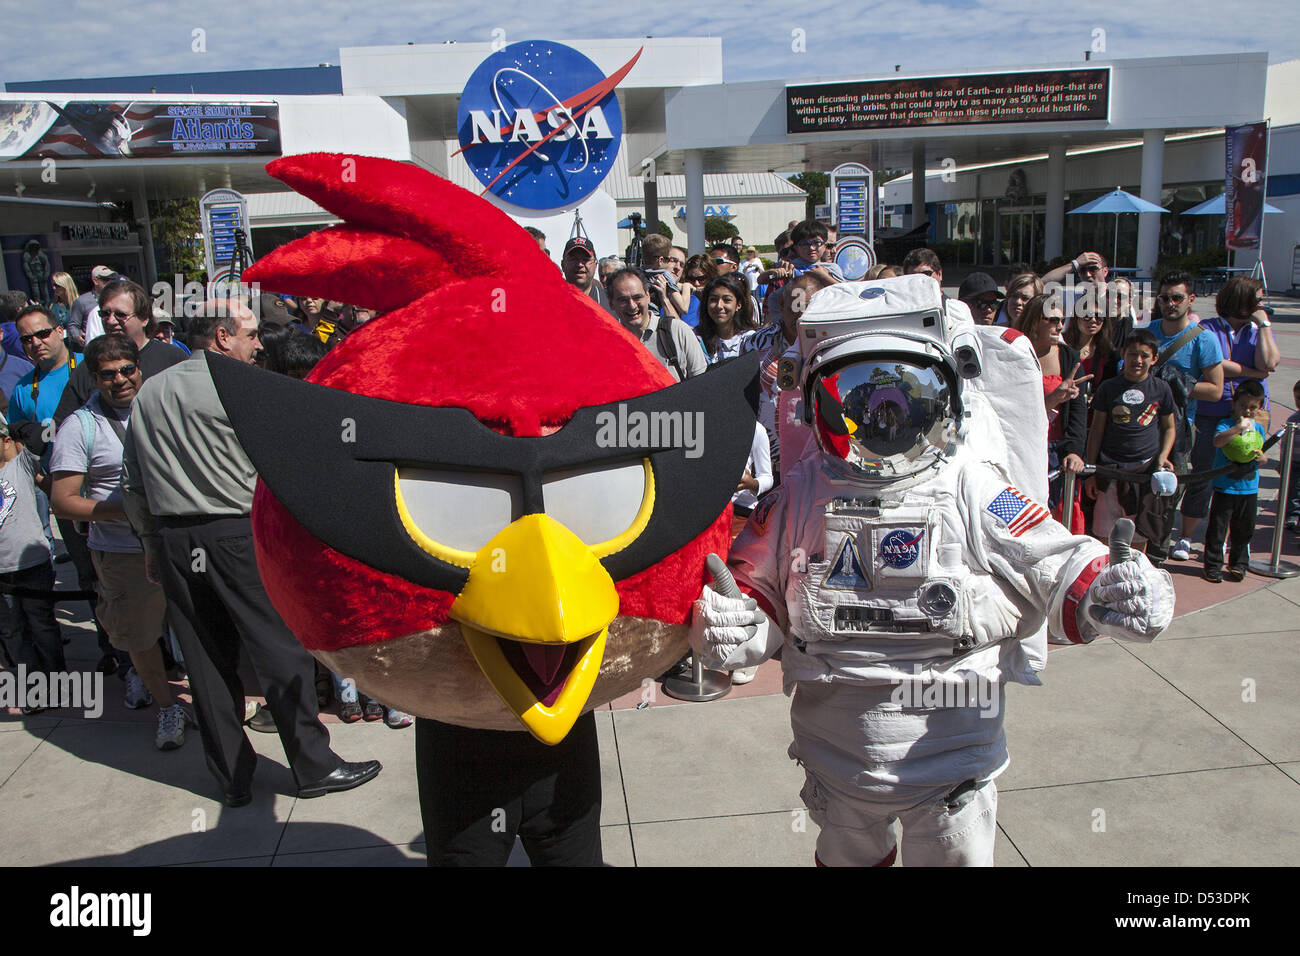 A character in an astronaut spacesuit and Red Bird, one of the Angry Bird characters, welcome visitors to the Angry - Stock Image